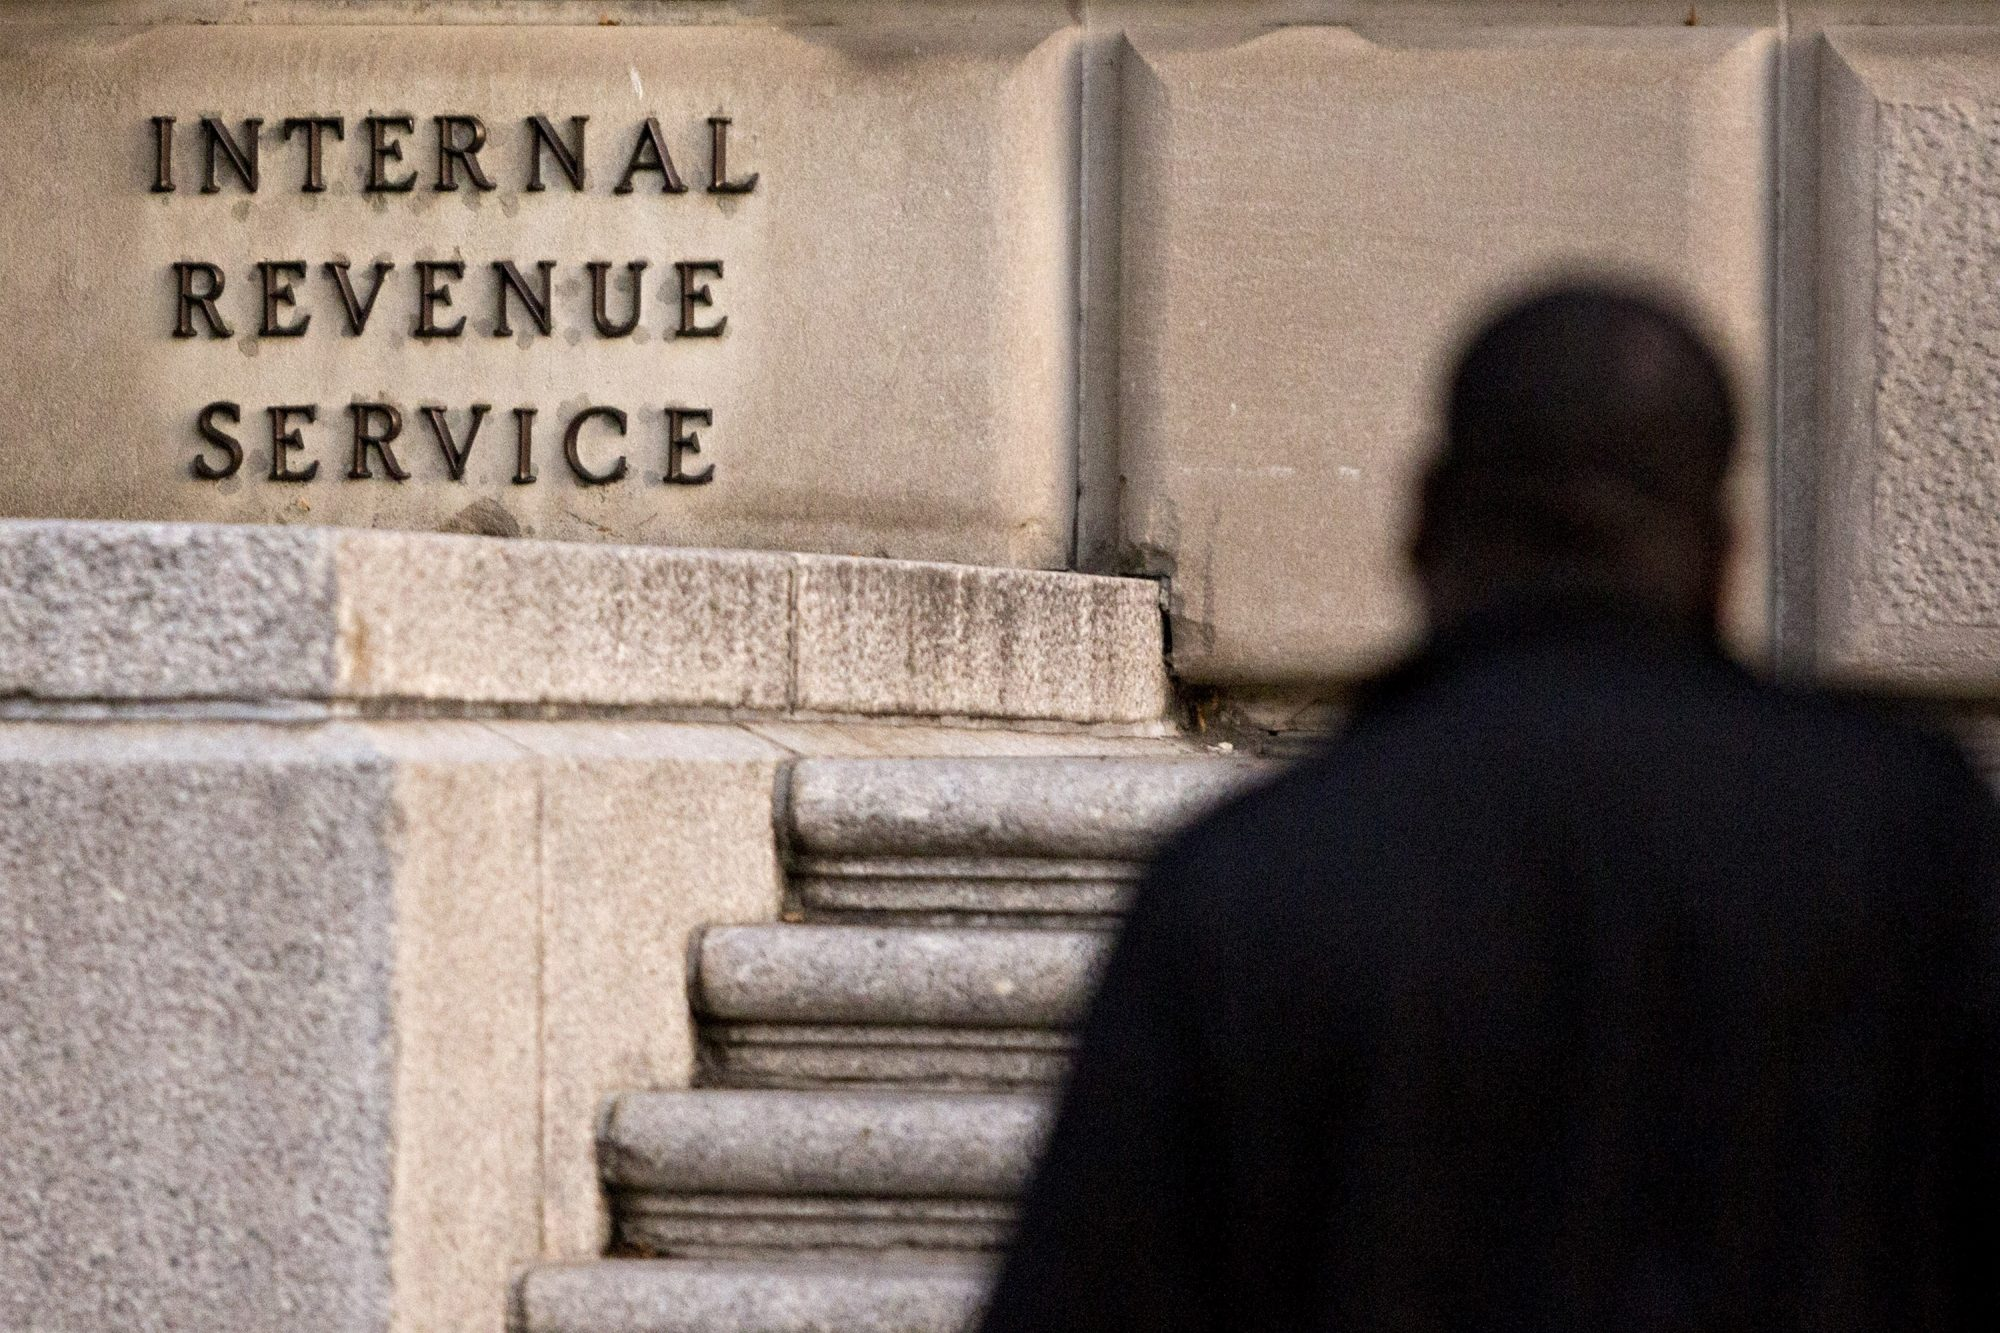 DN Speak 2016: After Budget Cuts, the IRS's Work Against Tax Cheats